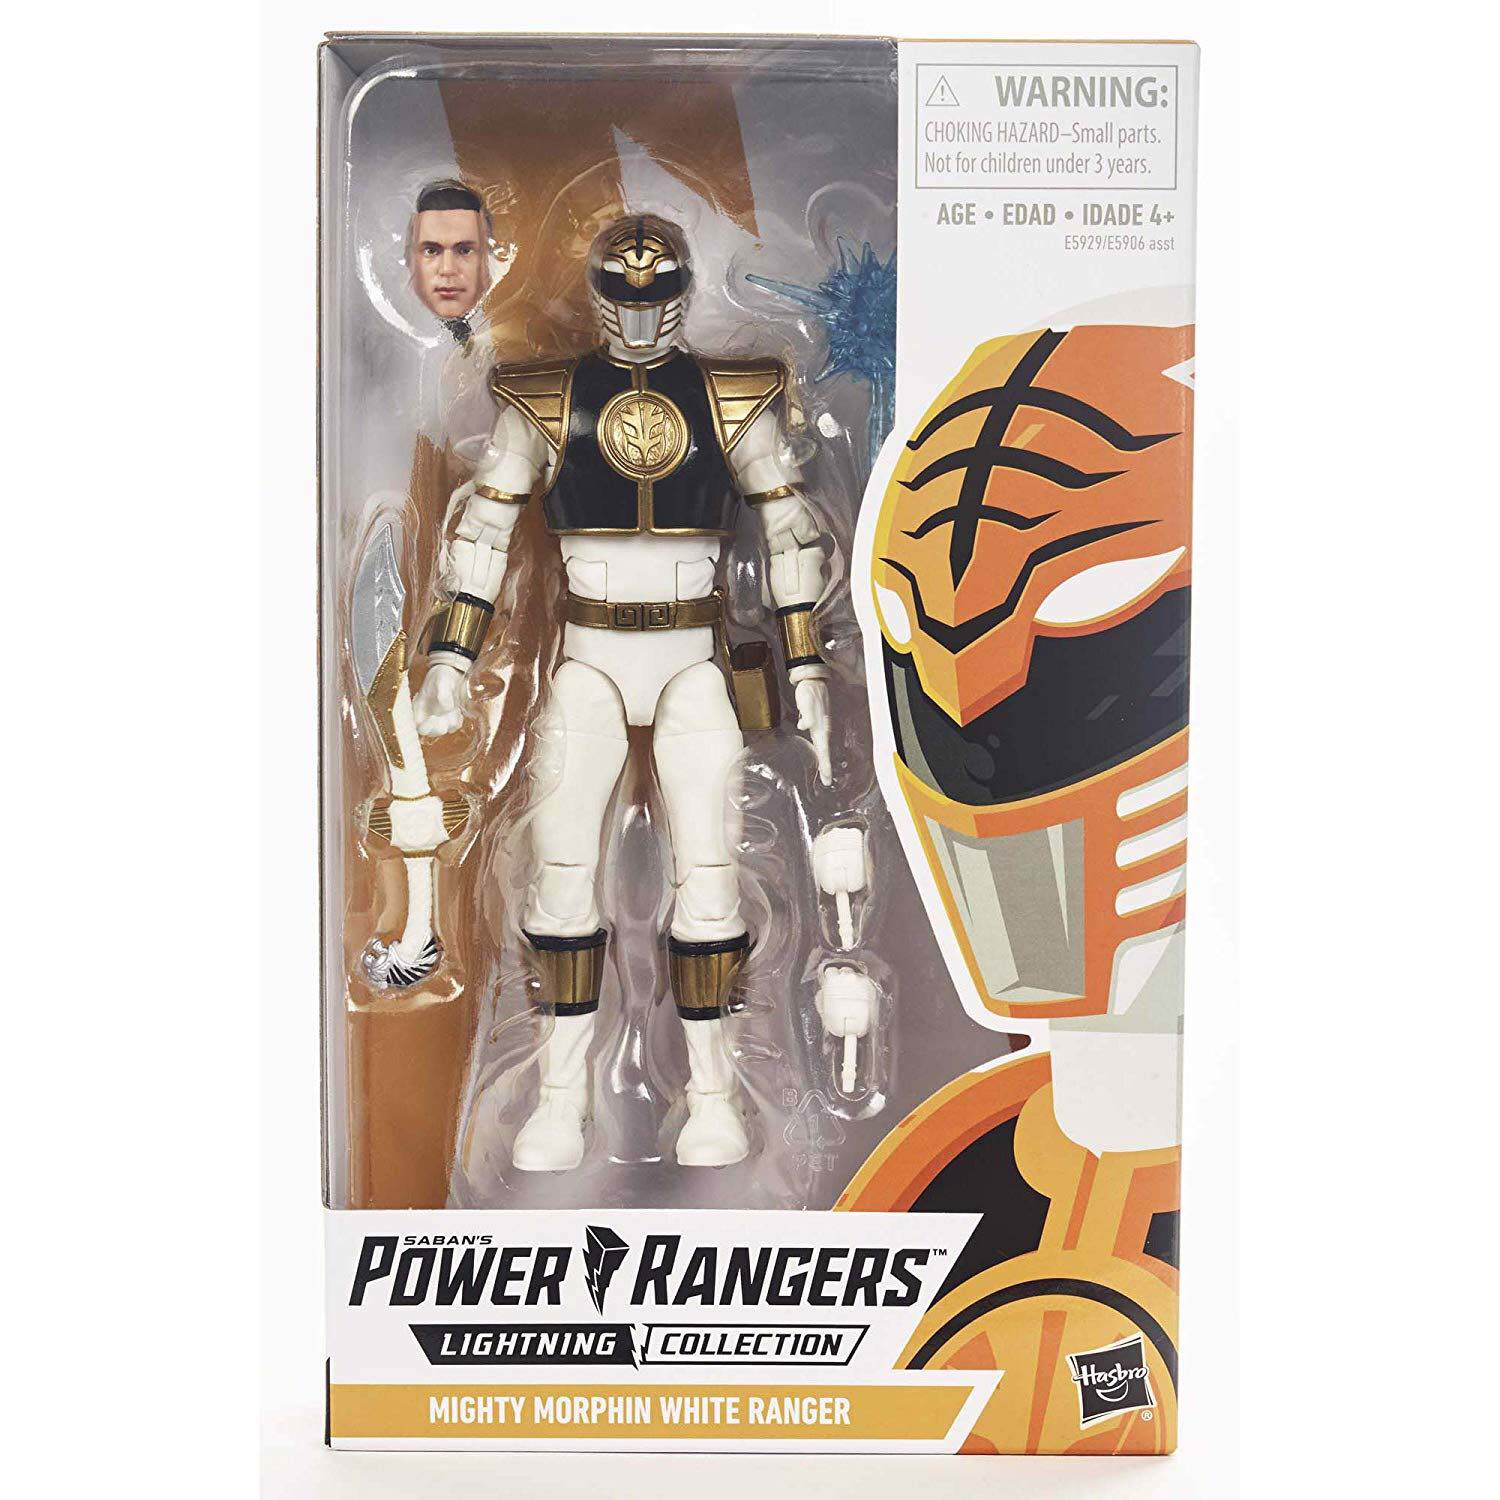 [CÓ SẴN] Hasbro Power Rangers Lightning Collection 6-Inch Mighty Morphin White Ranger Collectible Action Figure